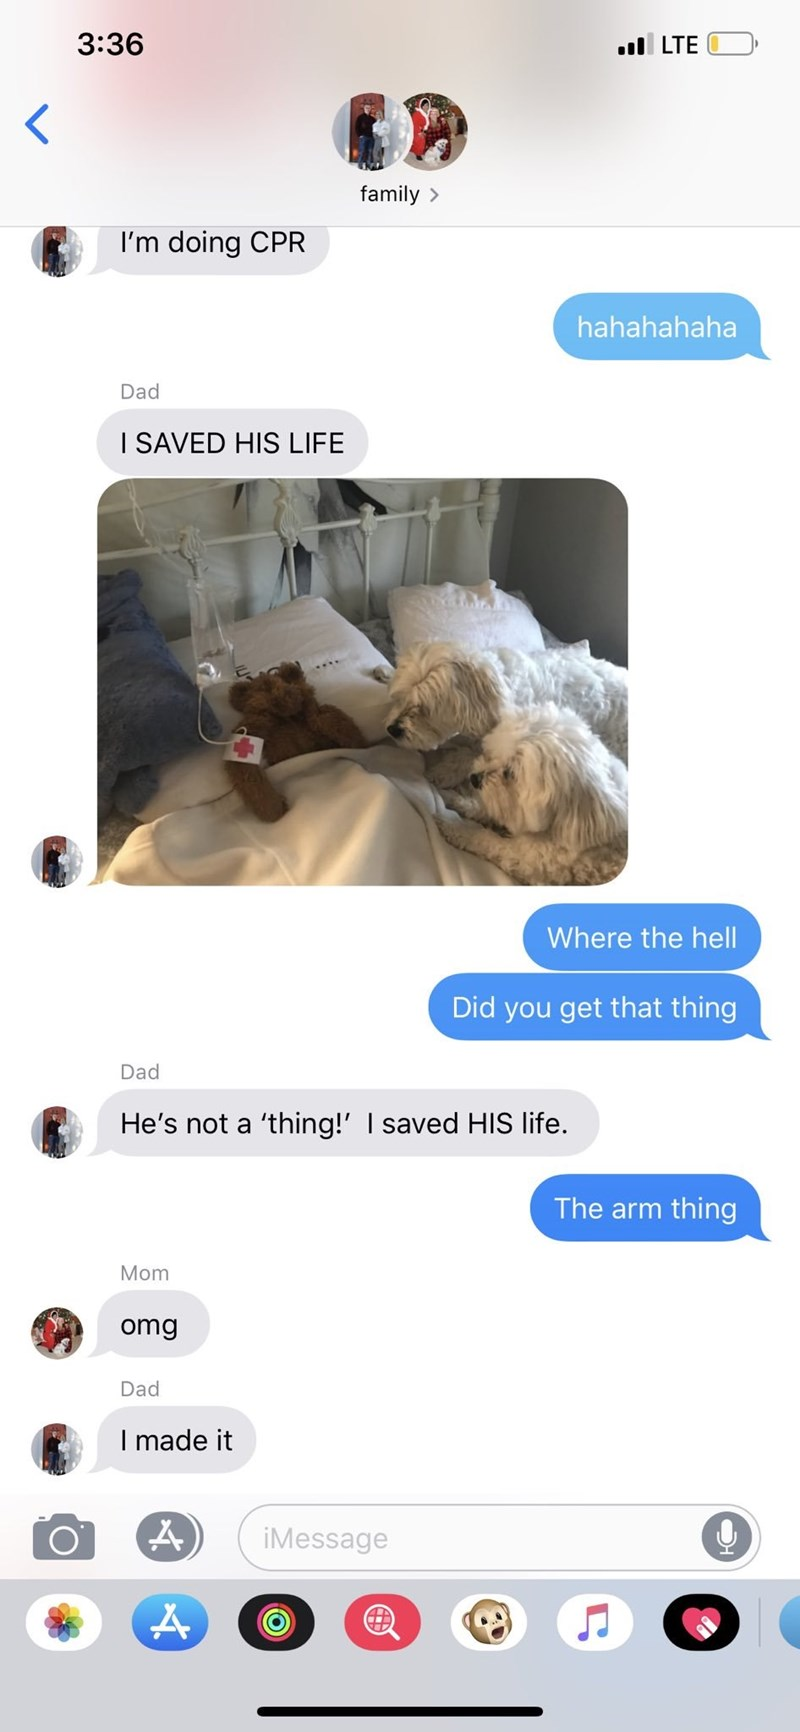 Product - 3:36 l LTE family > I'm doing CPR hahahahaha Dad I SAVED HIS LIFE Where the hell Did you get that thing Dad He's not a 'thing!' I saved HIS life. The arm thing Mom omg Dad I made it iMessage